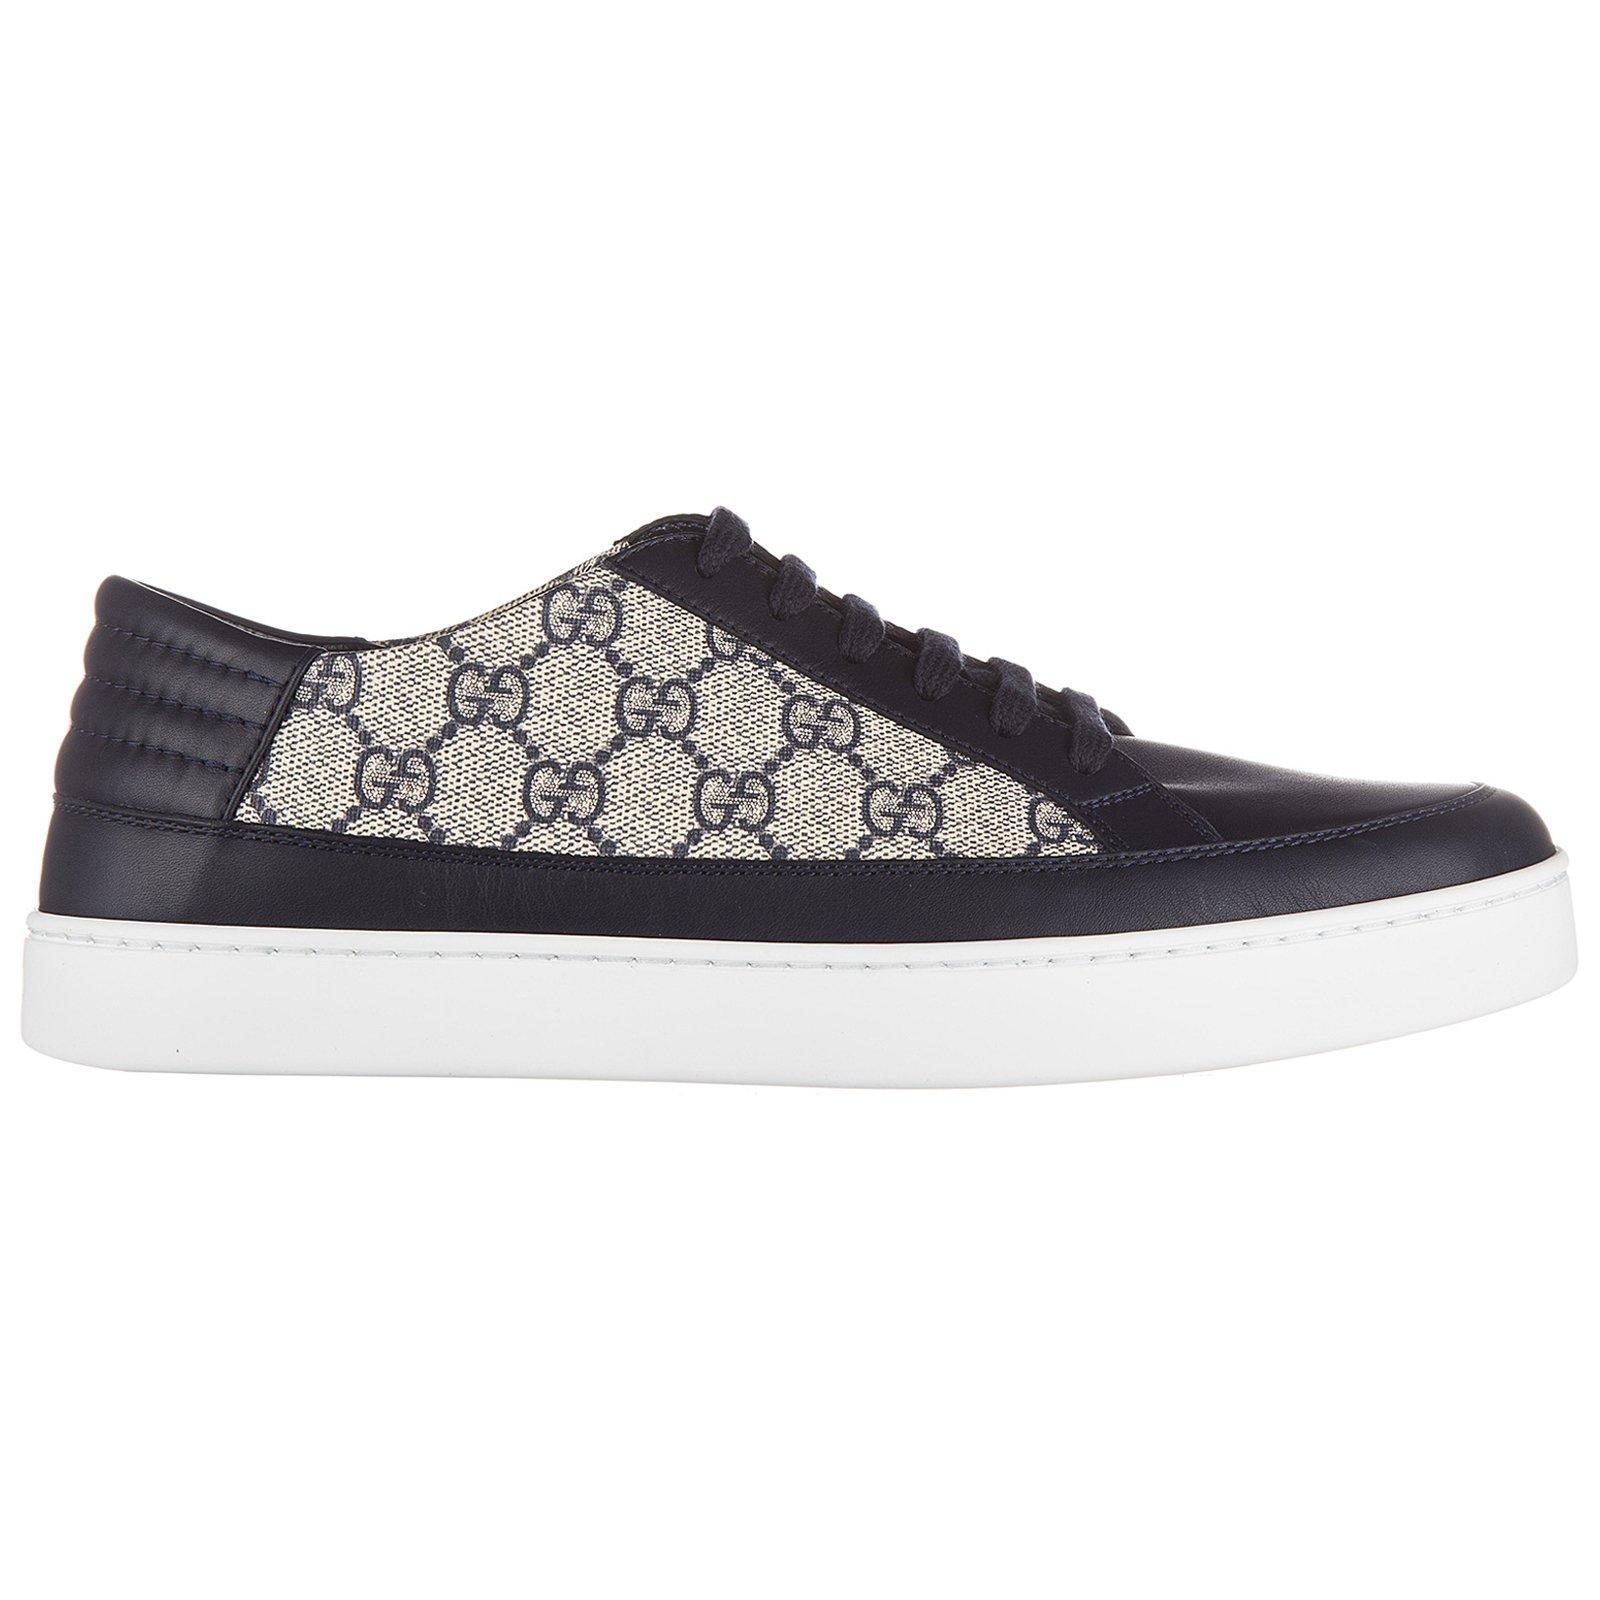 cceec1dccaa Lyst - Gucci Supreme Low-top Sneakers in Black for Men